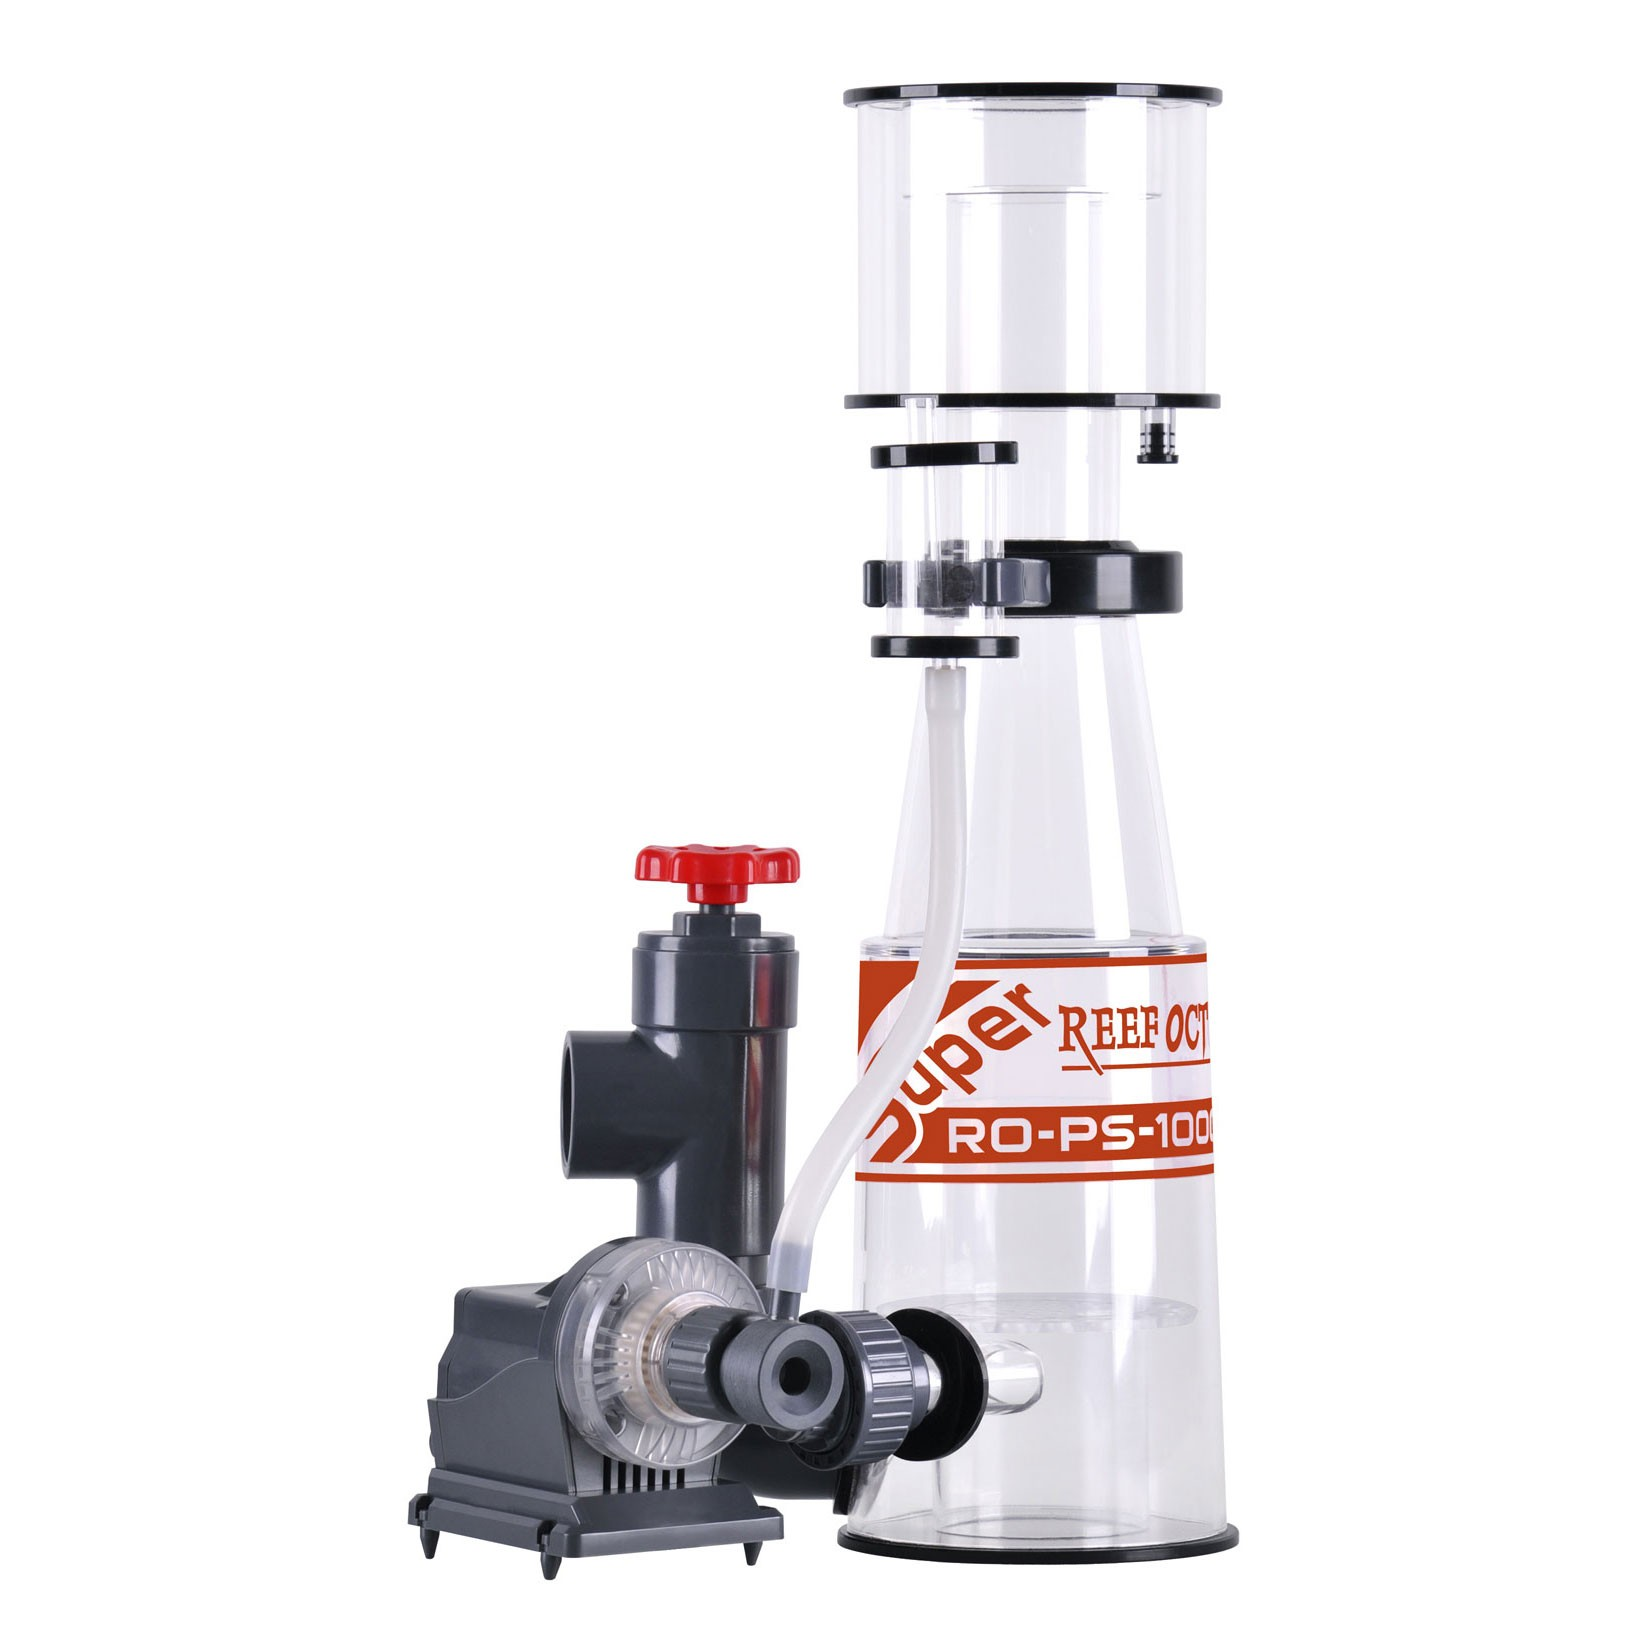 Reef Octopus SRO-1000 Super Reef In-Sump Protein Skimmer, 75-125 Gallons